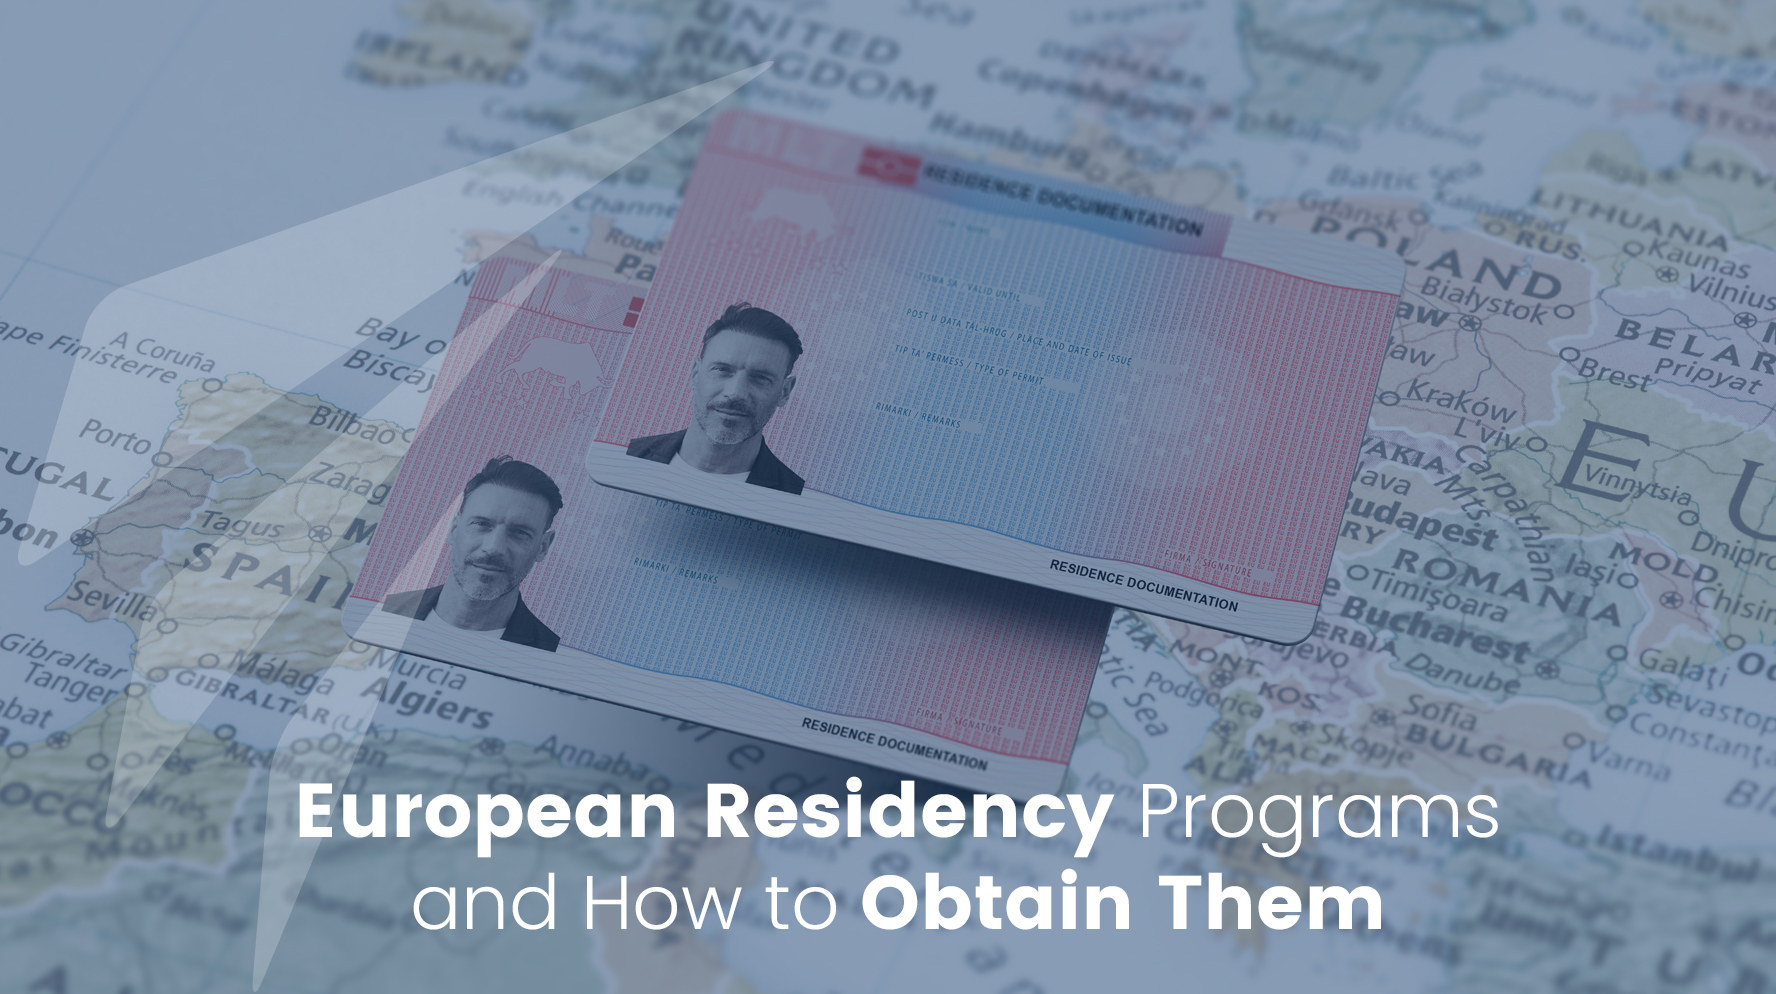 European Residency Programs Options and Eligibility